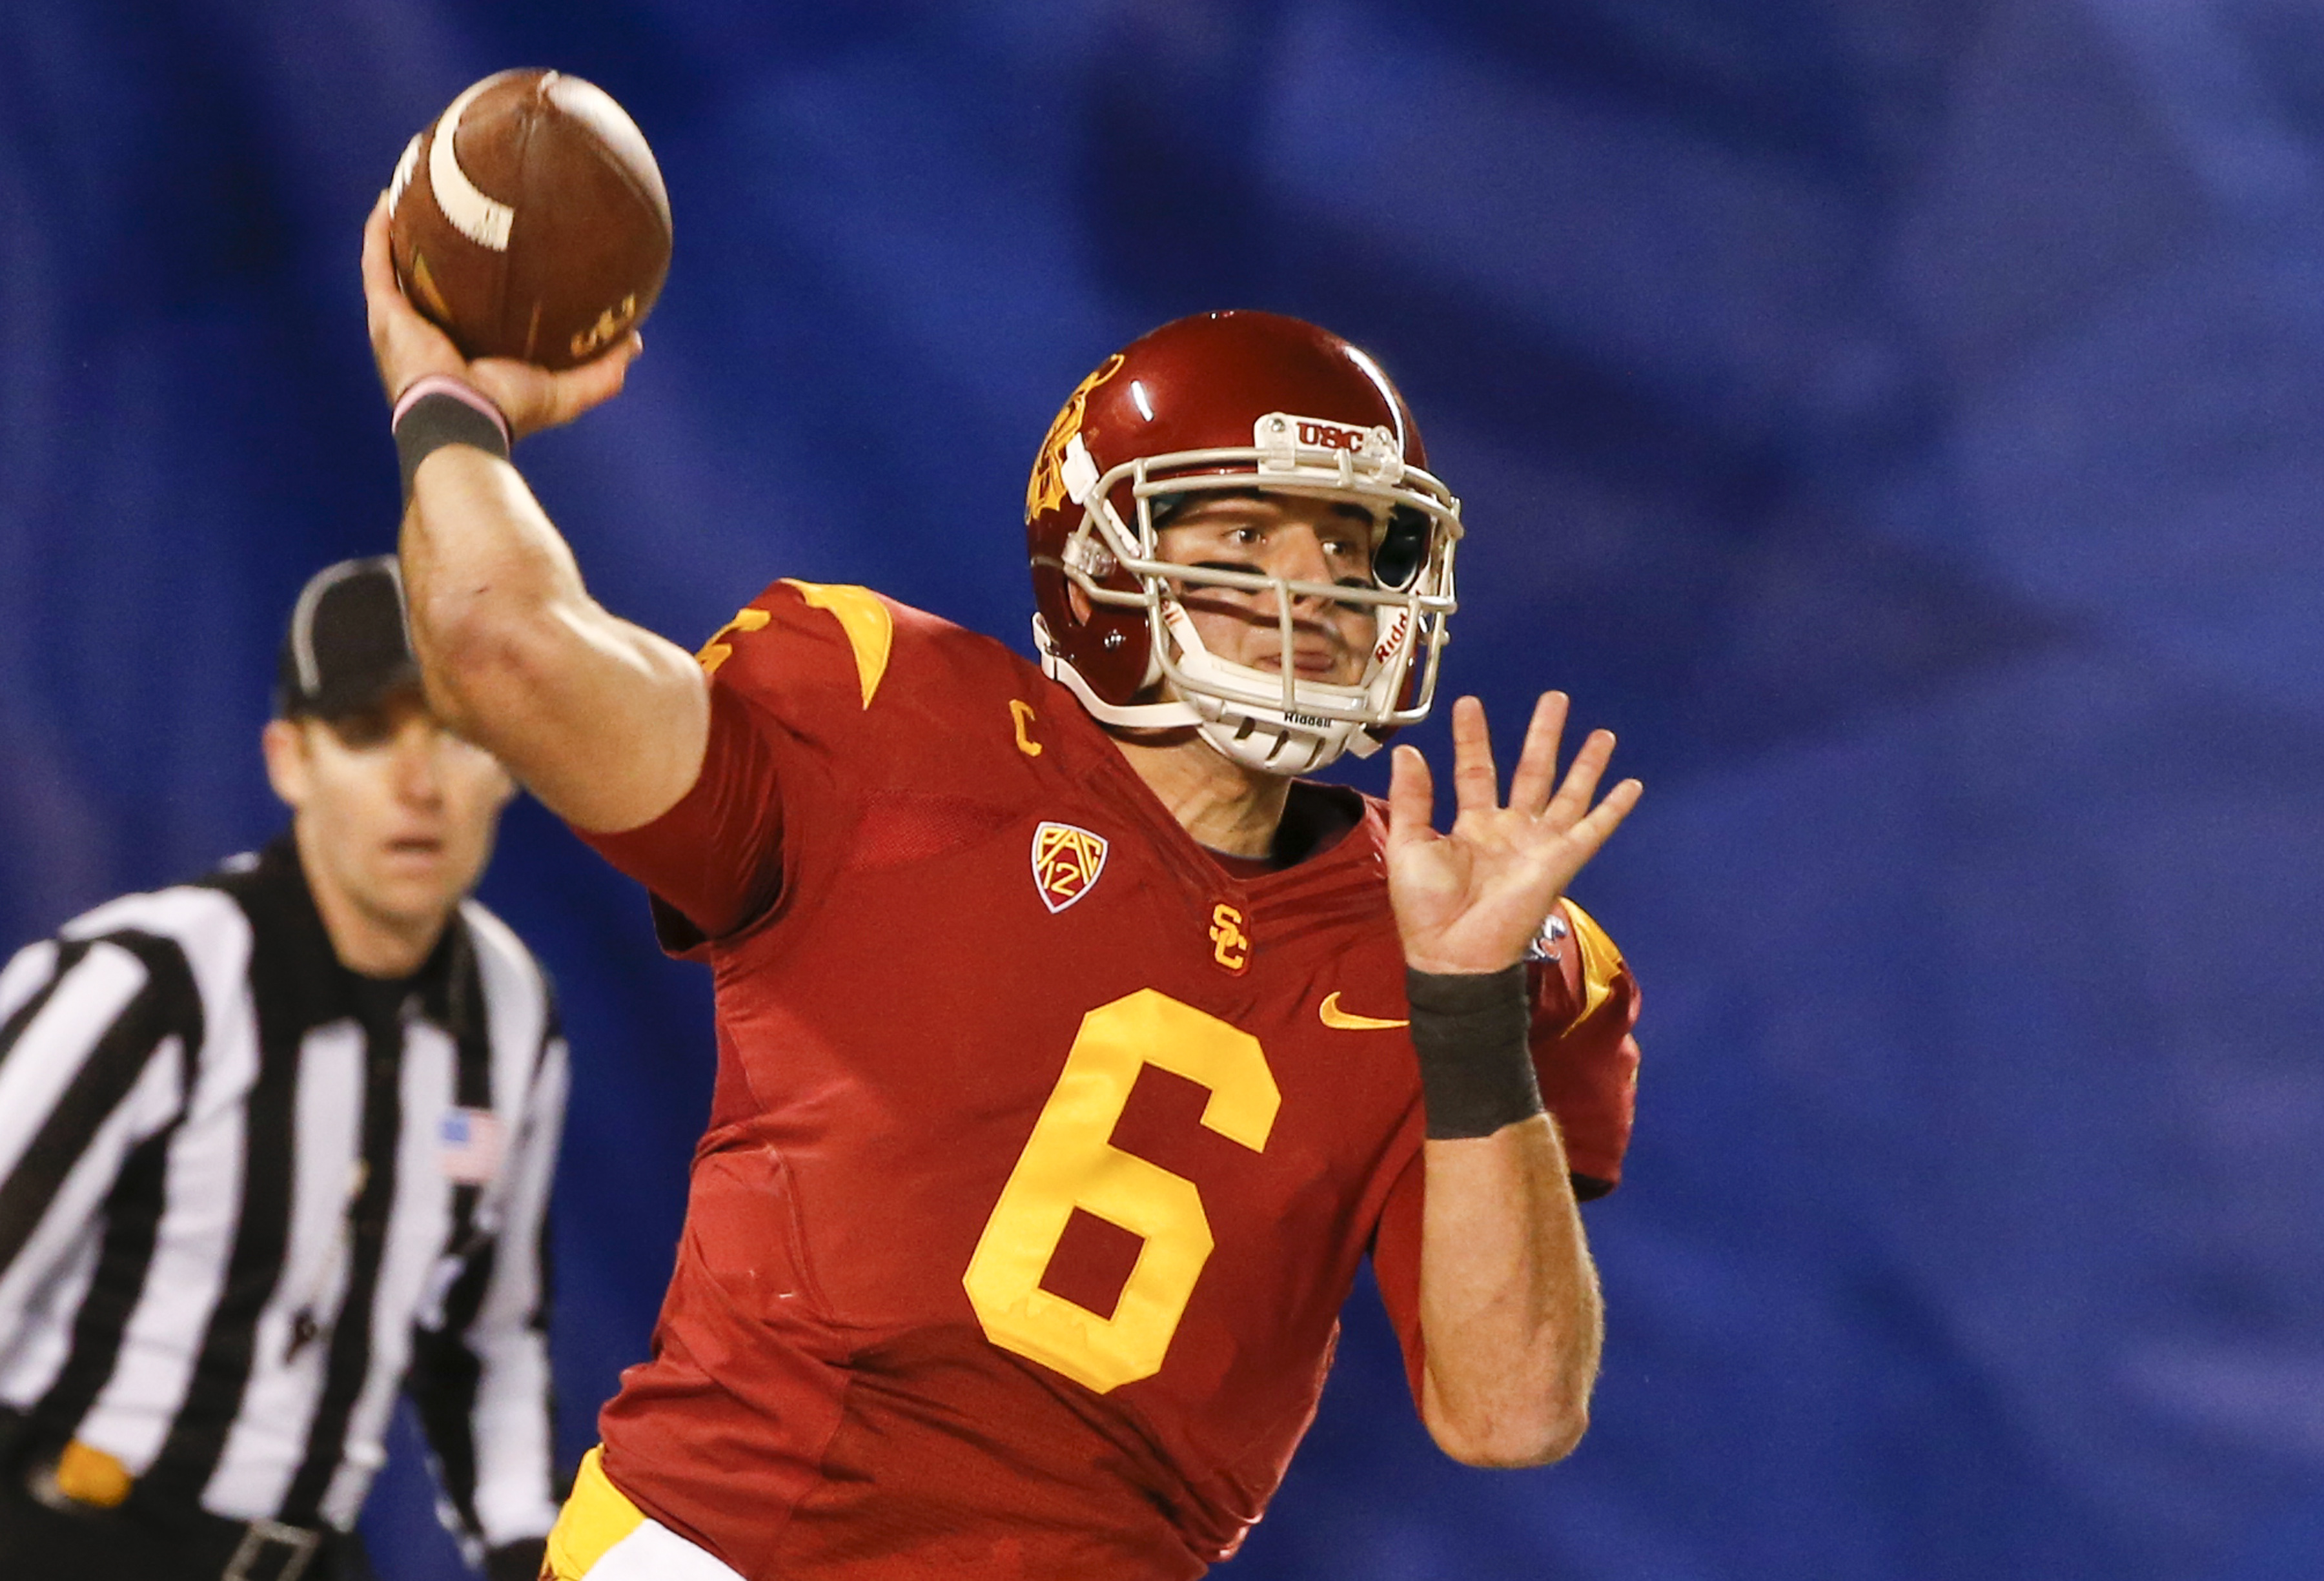 FILE - In this Dec. 27, 2014, file photo, Southern California quarterback Cody Kessler throws a pass against Nebraska during the first half of the Holiday Bowl NCAA college football game in San Diego. Kessler has already made it through almost every conce